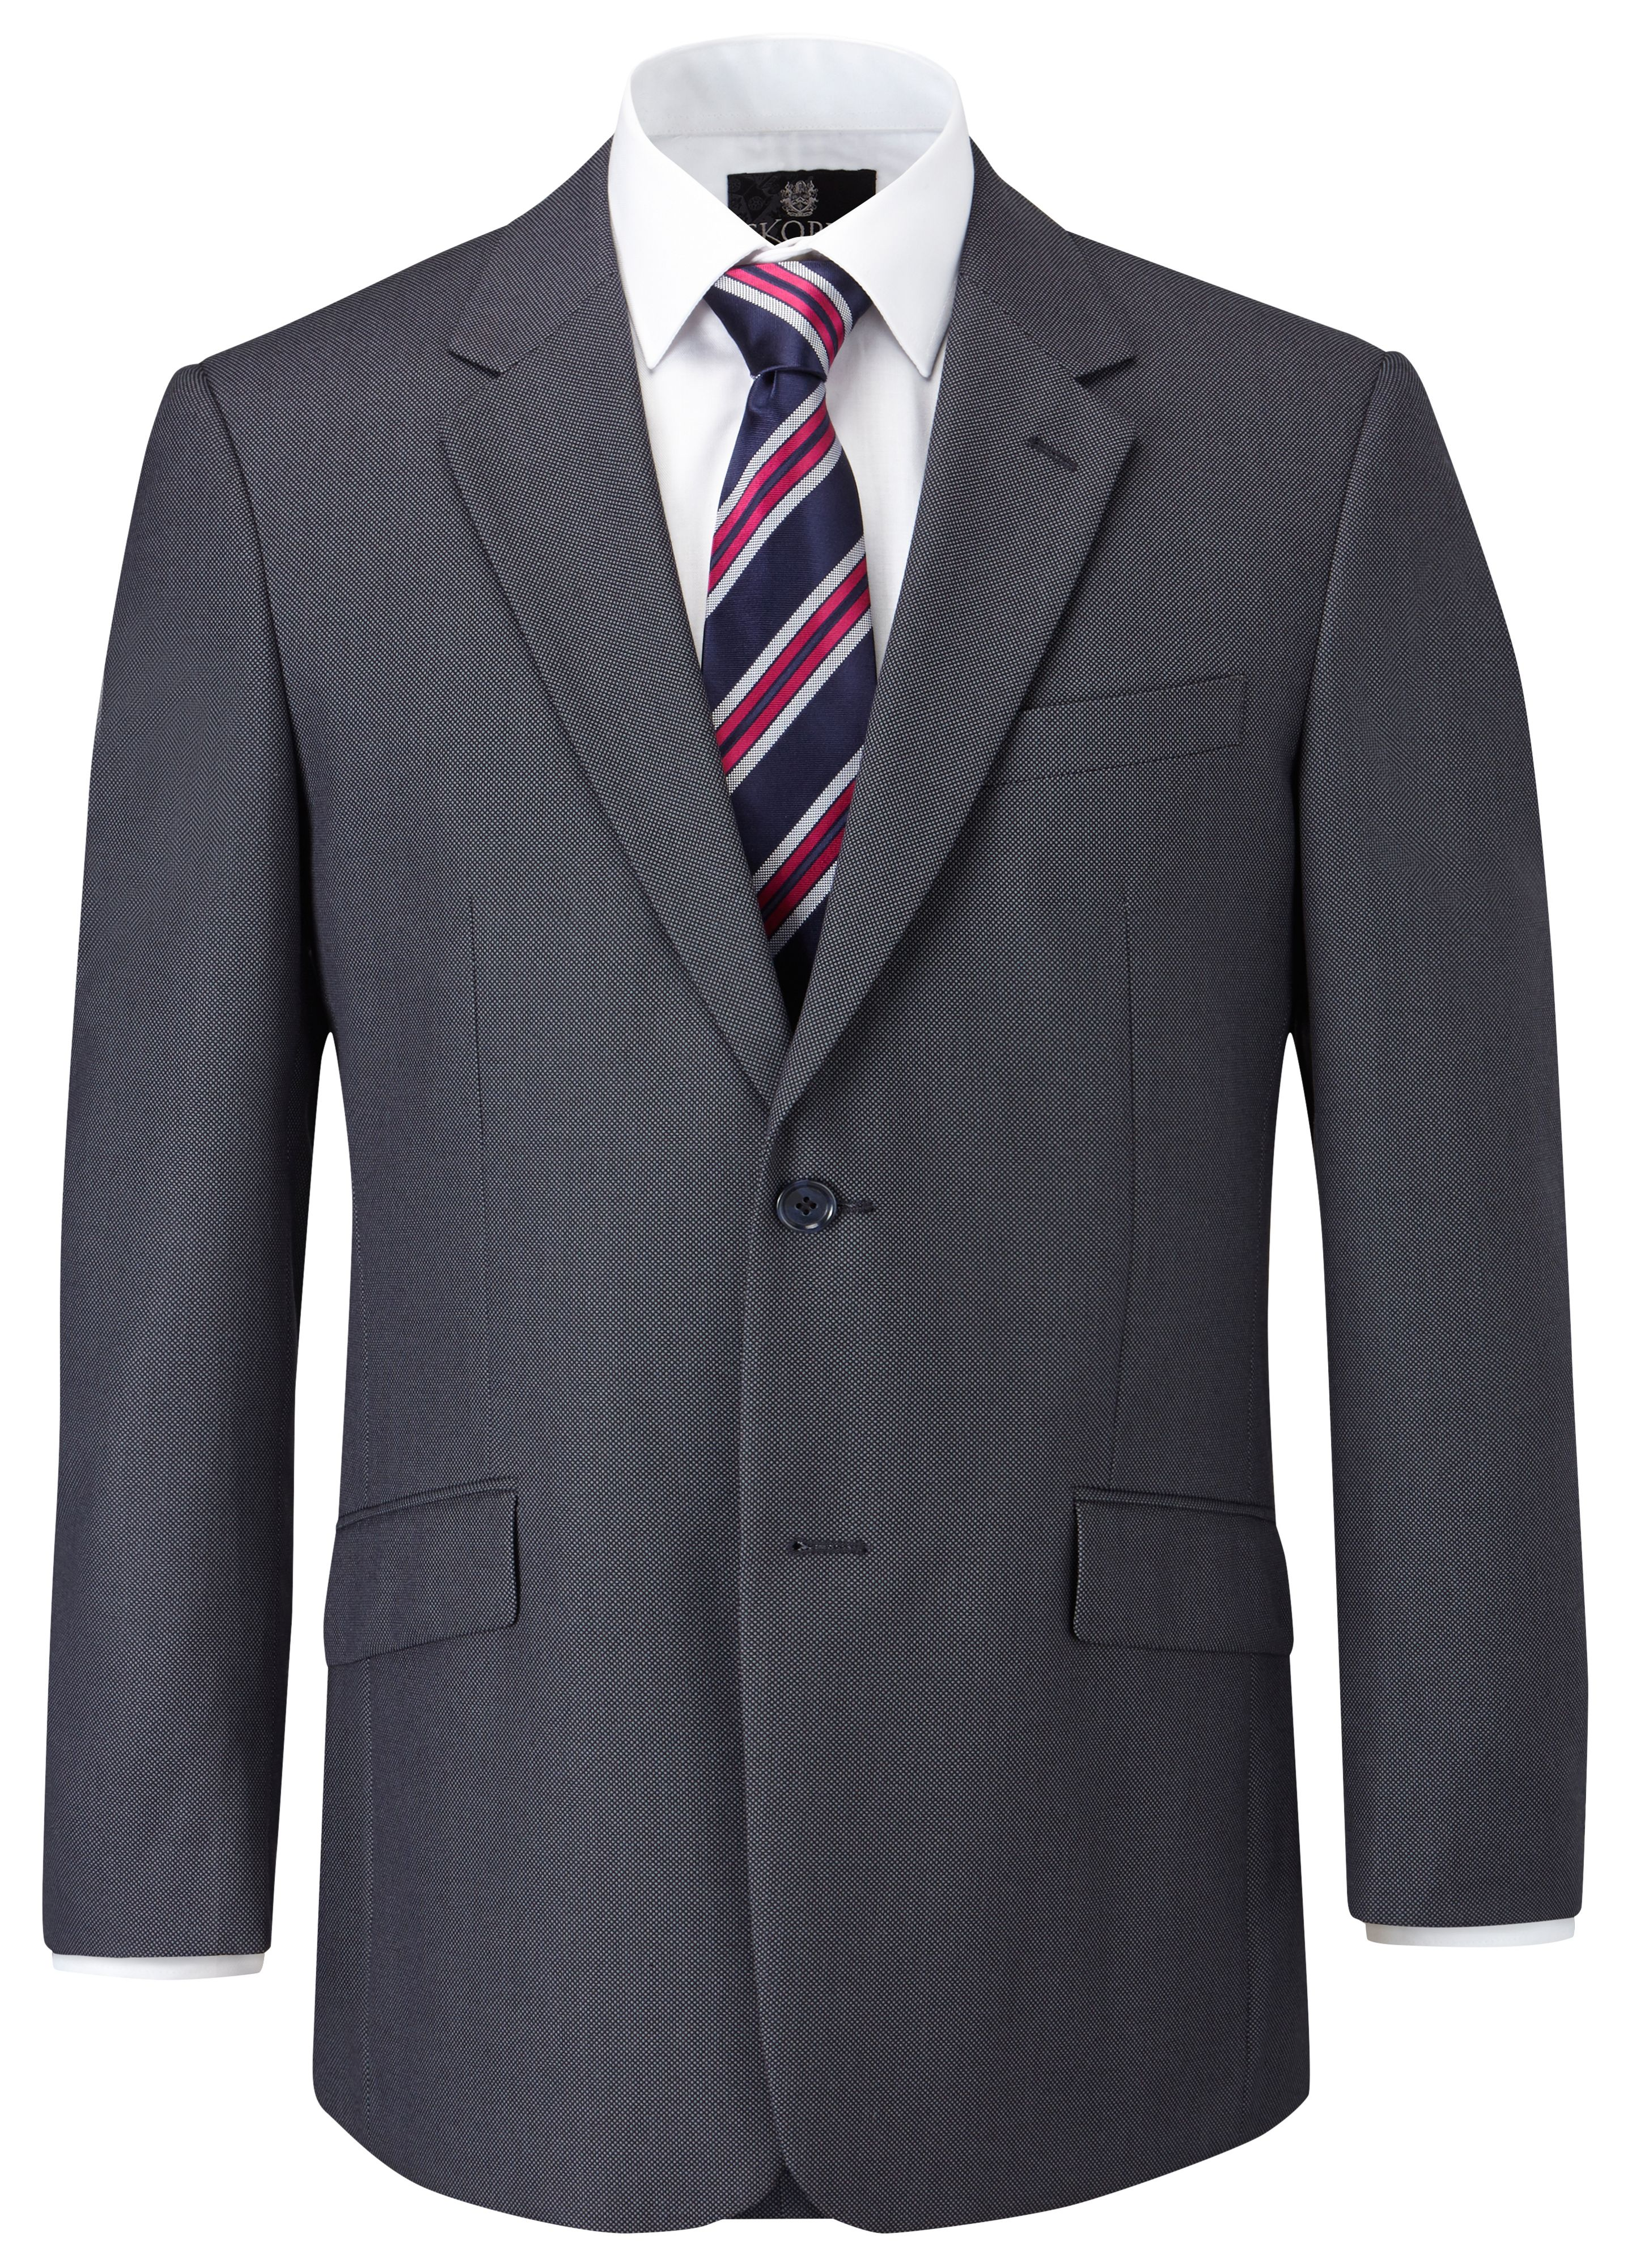 Shadwell classic single breasted suit jacket